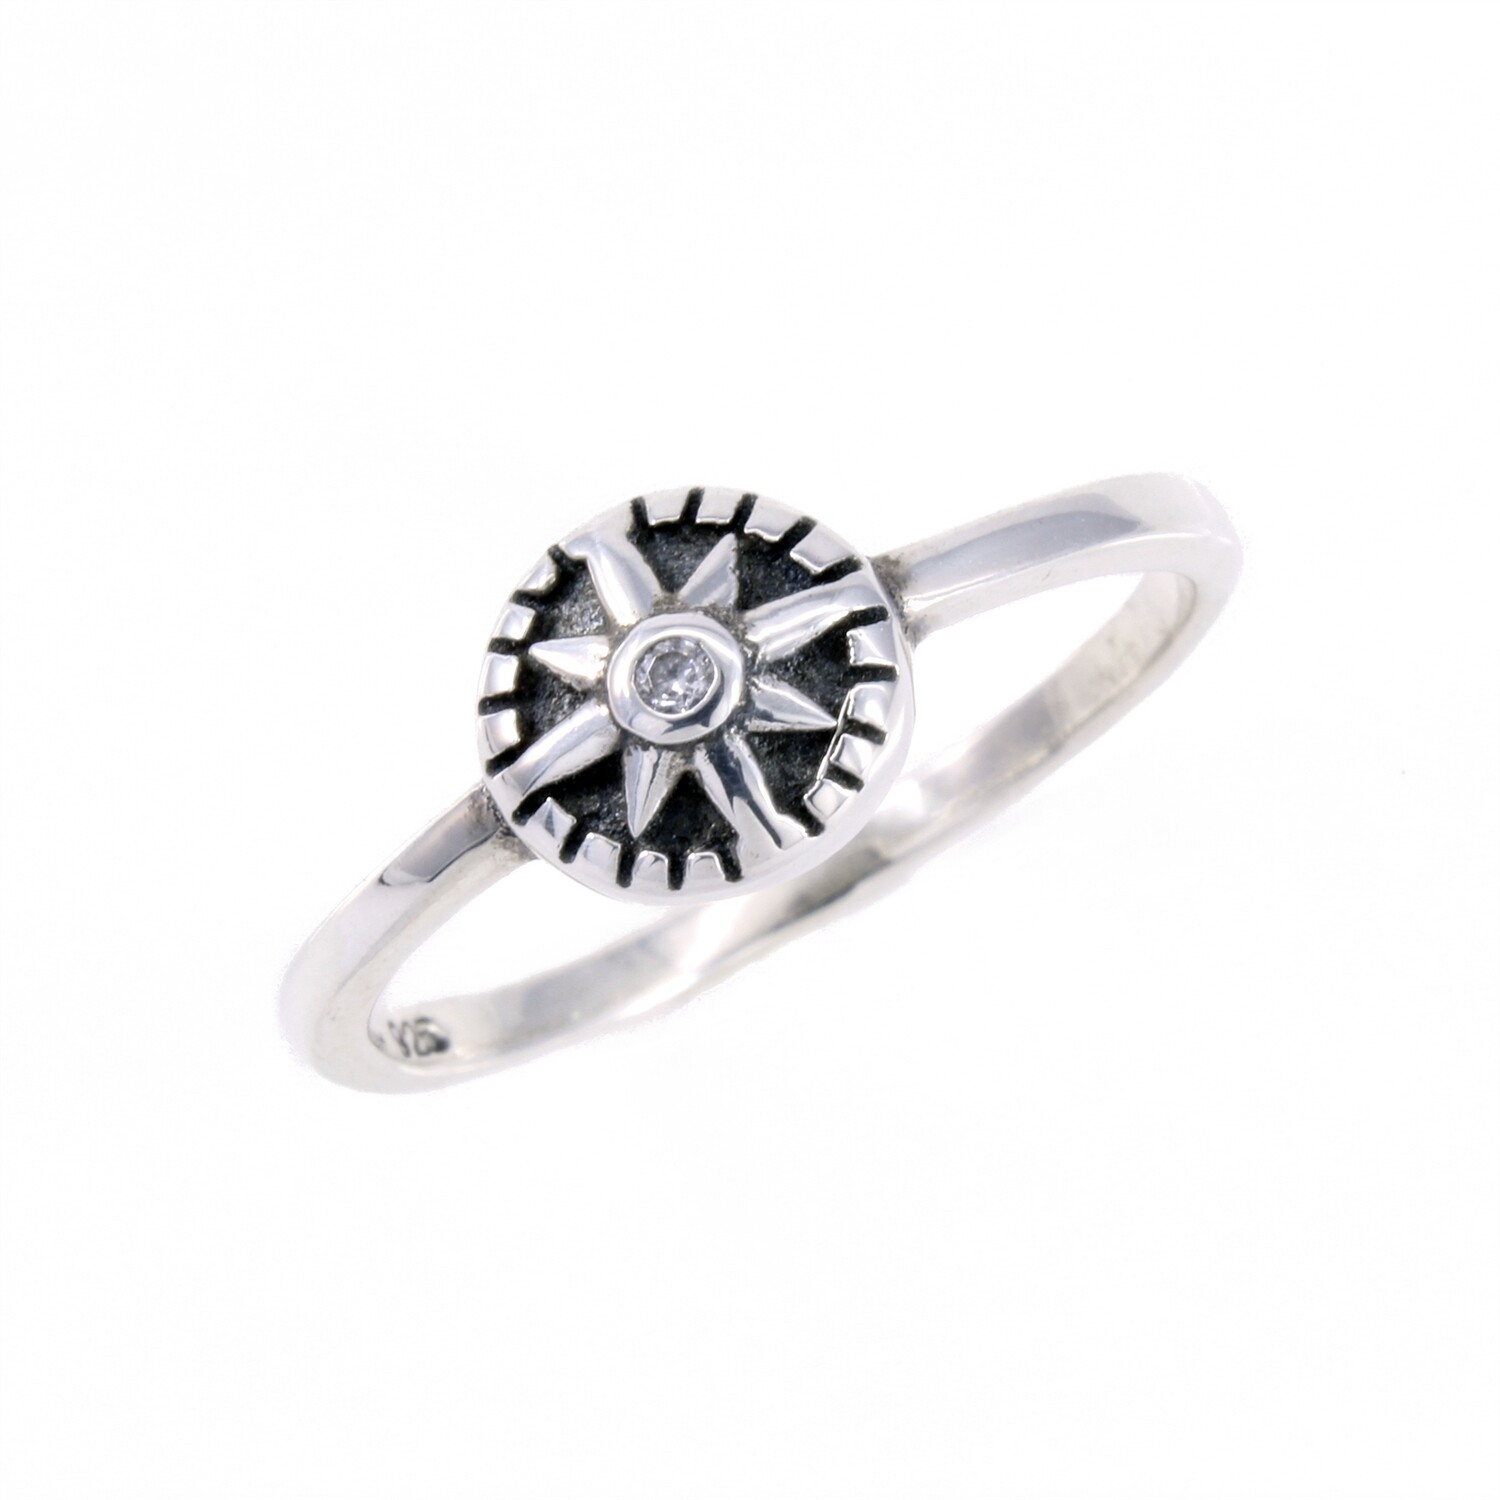 RP3137 Sterling Silver Compass Rose Star CZ Ring